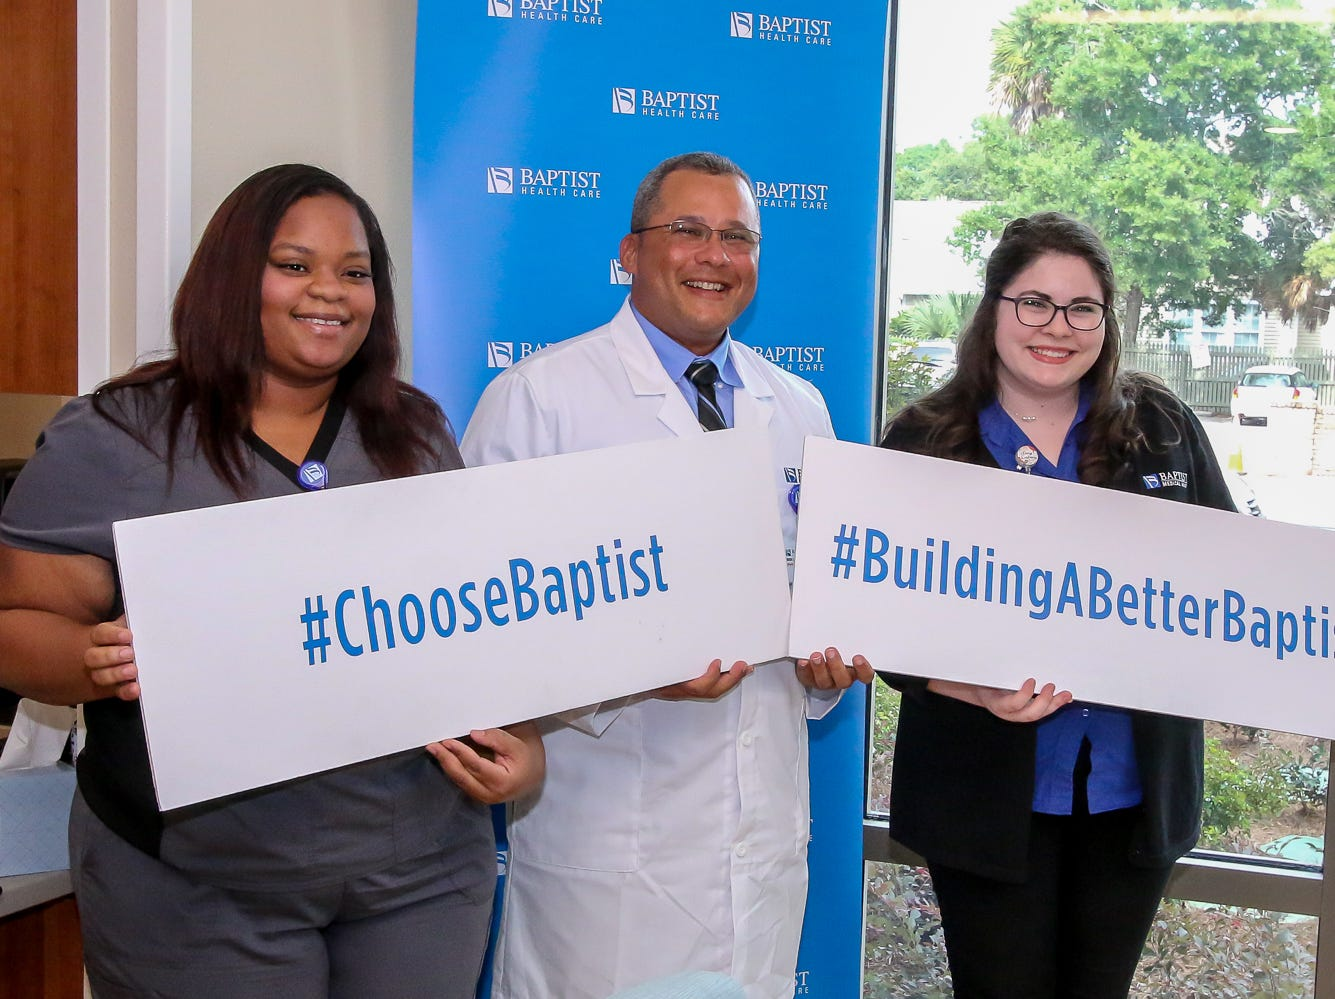 Employees Katrease Loveless, left, and Rachel Turley, right, pose for a photo with board-certified physician assistant Jean Bernard Le Gall, PA-C, during an open house for the new Convenient Care Southtowne walk-in clinic in downtown Pensacola on Thursday, August 9, 2018. Located across from the YMCA near the S. Tarragona intersection at 190 E. Intendencia St., the clinic will be open from 8 a.m. to 5 p.m. Monday through Friday.